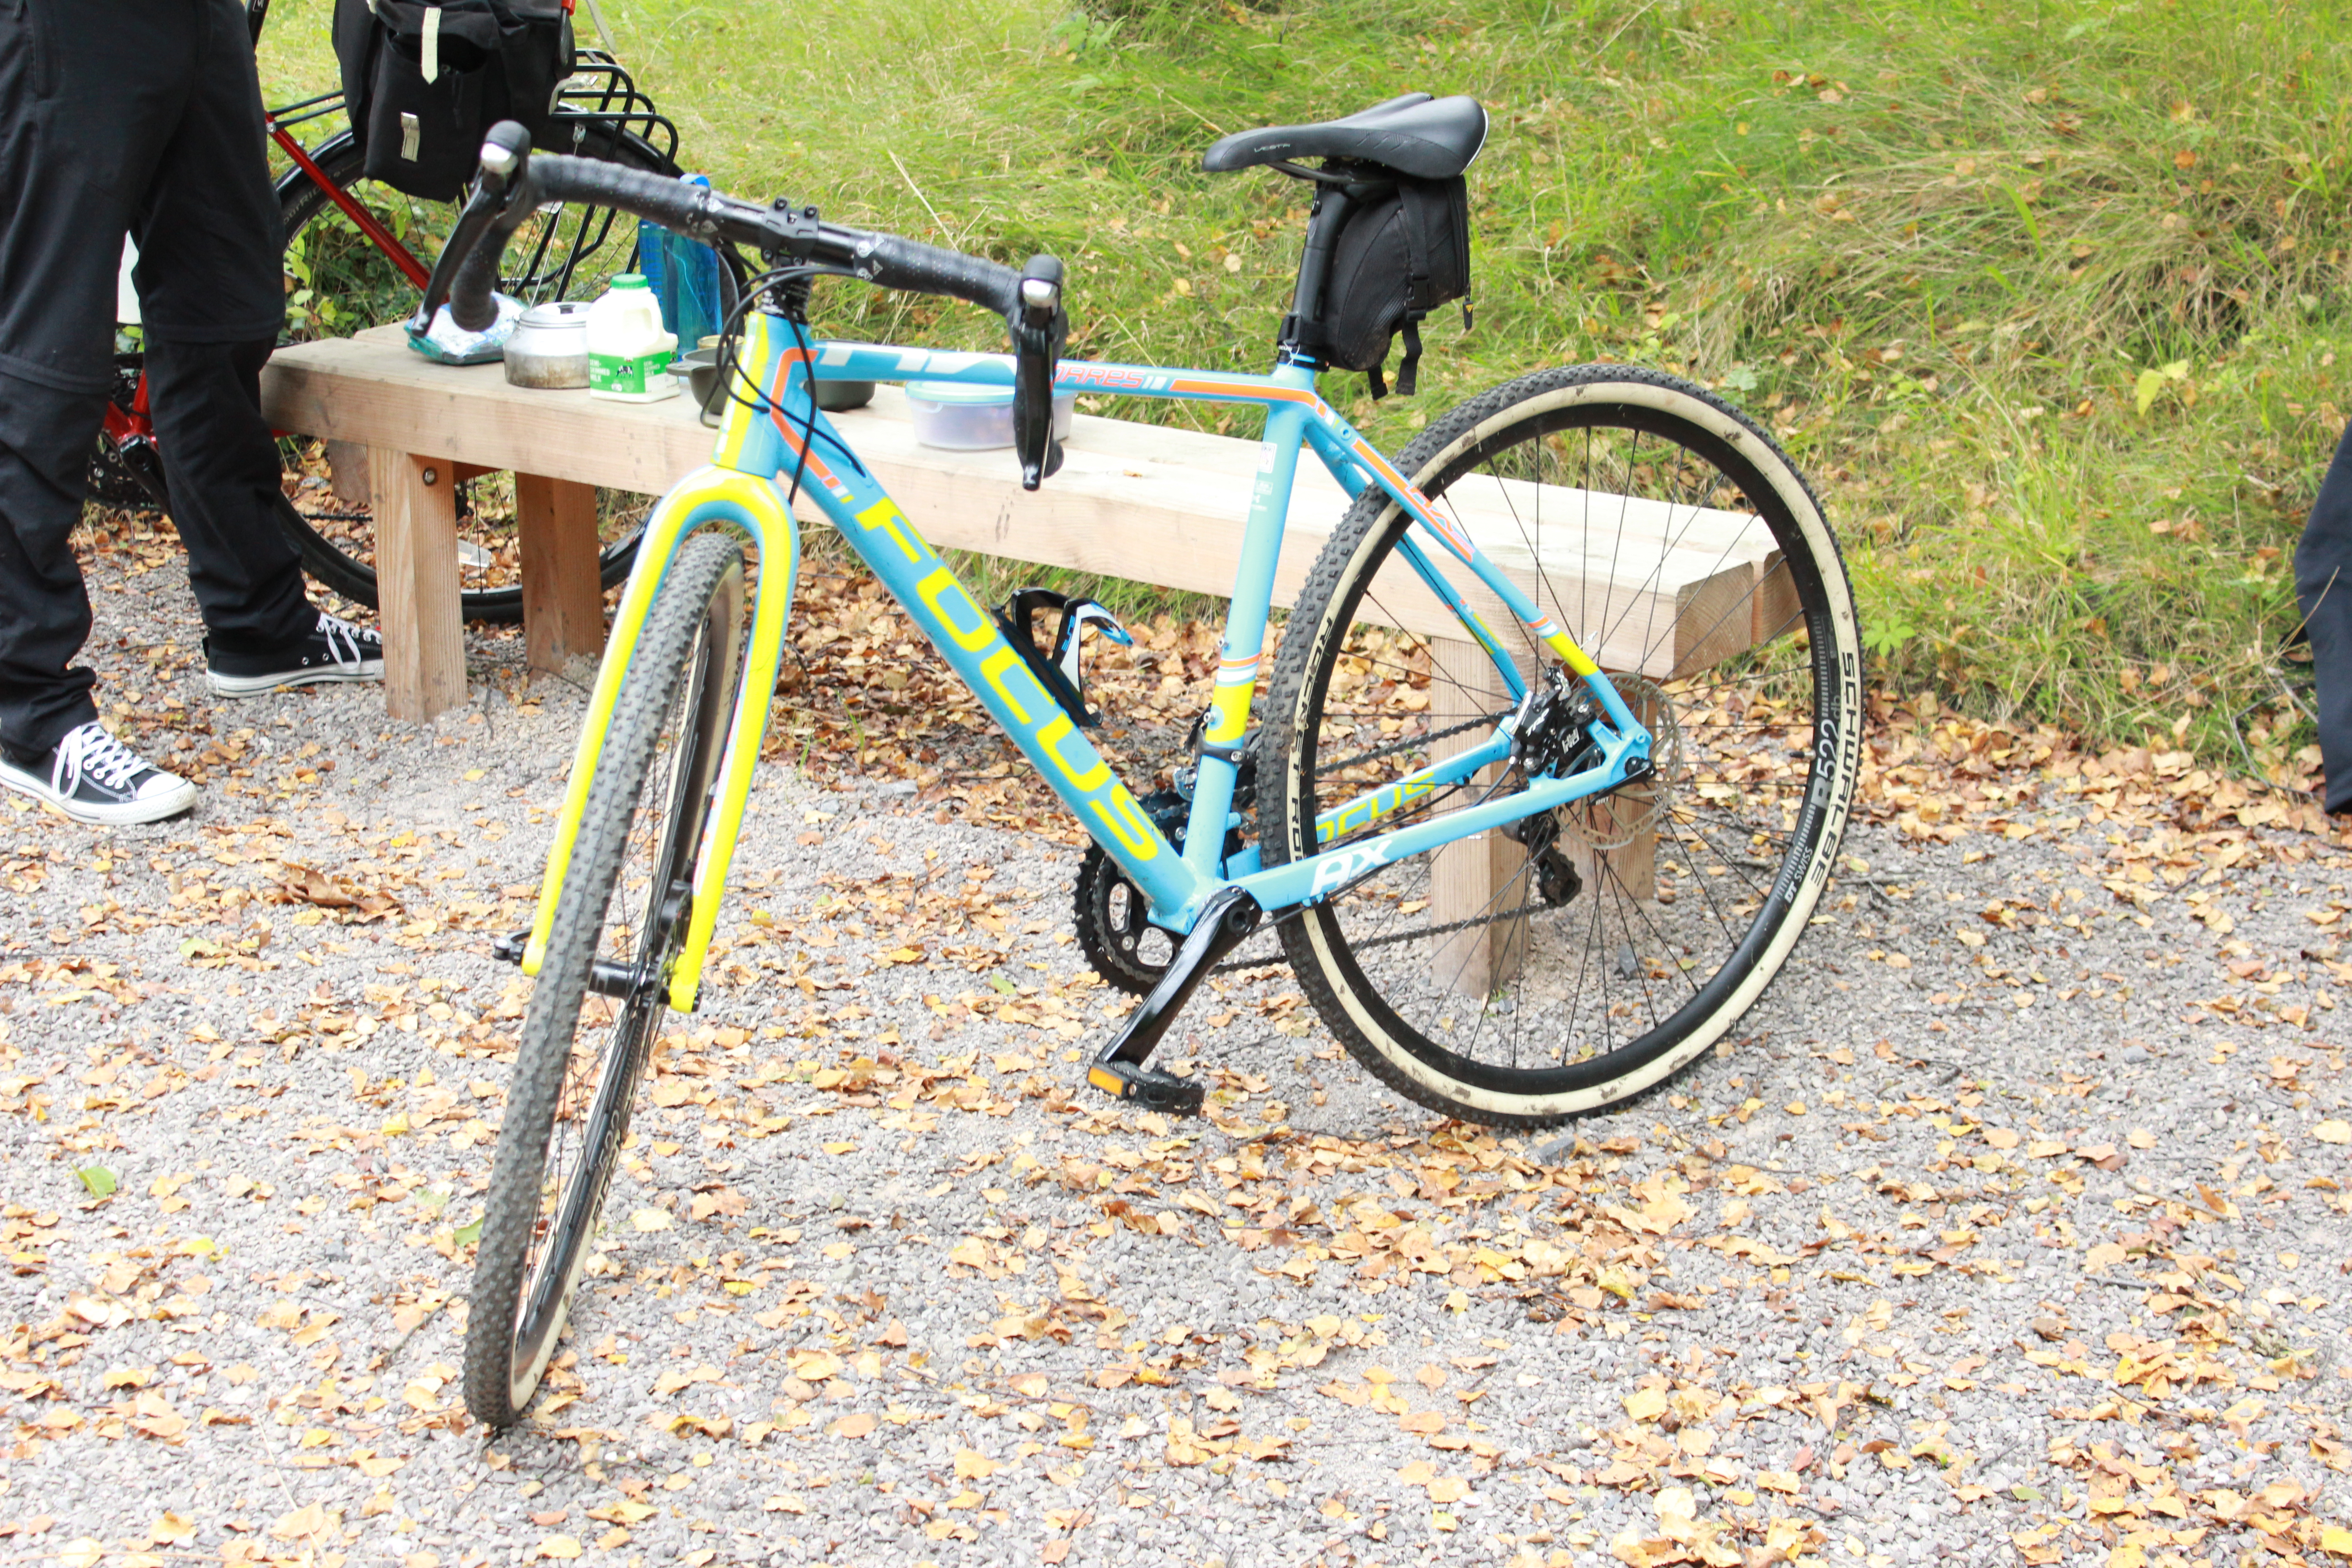 2016 Focus Mares AX 105 Cyclocross Bike What is a Cyclocross Bike?